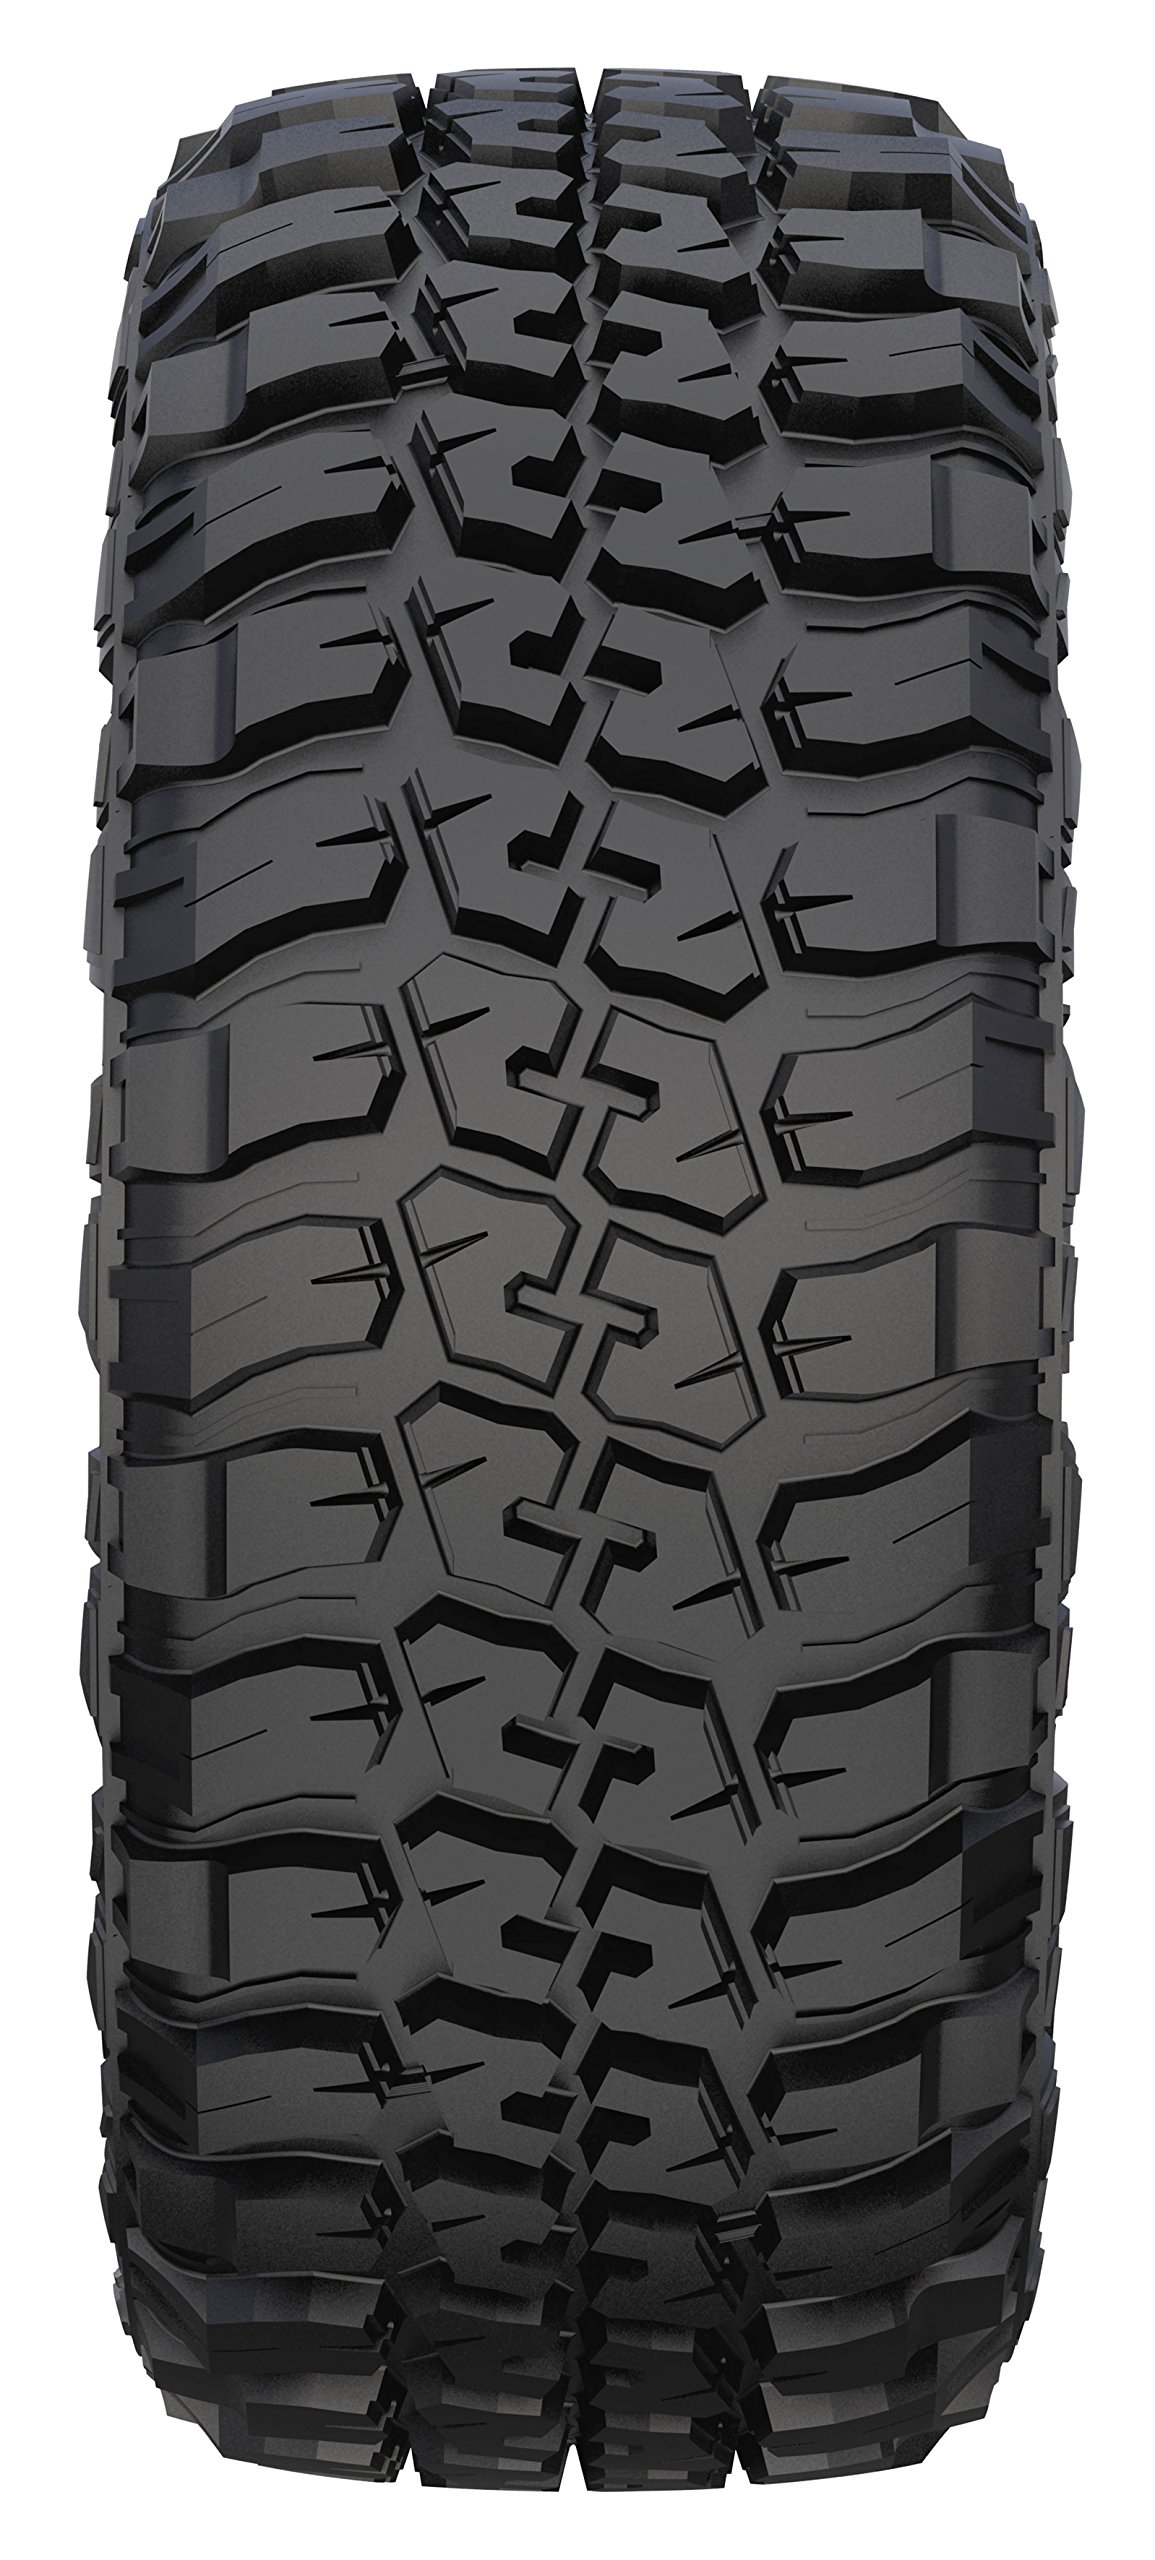 Federal Couragia M/T Mud-Terrain Radial Tire - LT285/75R16 123Q by Federal (Image #2)